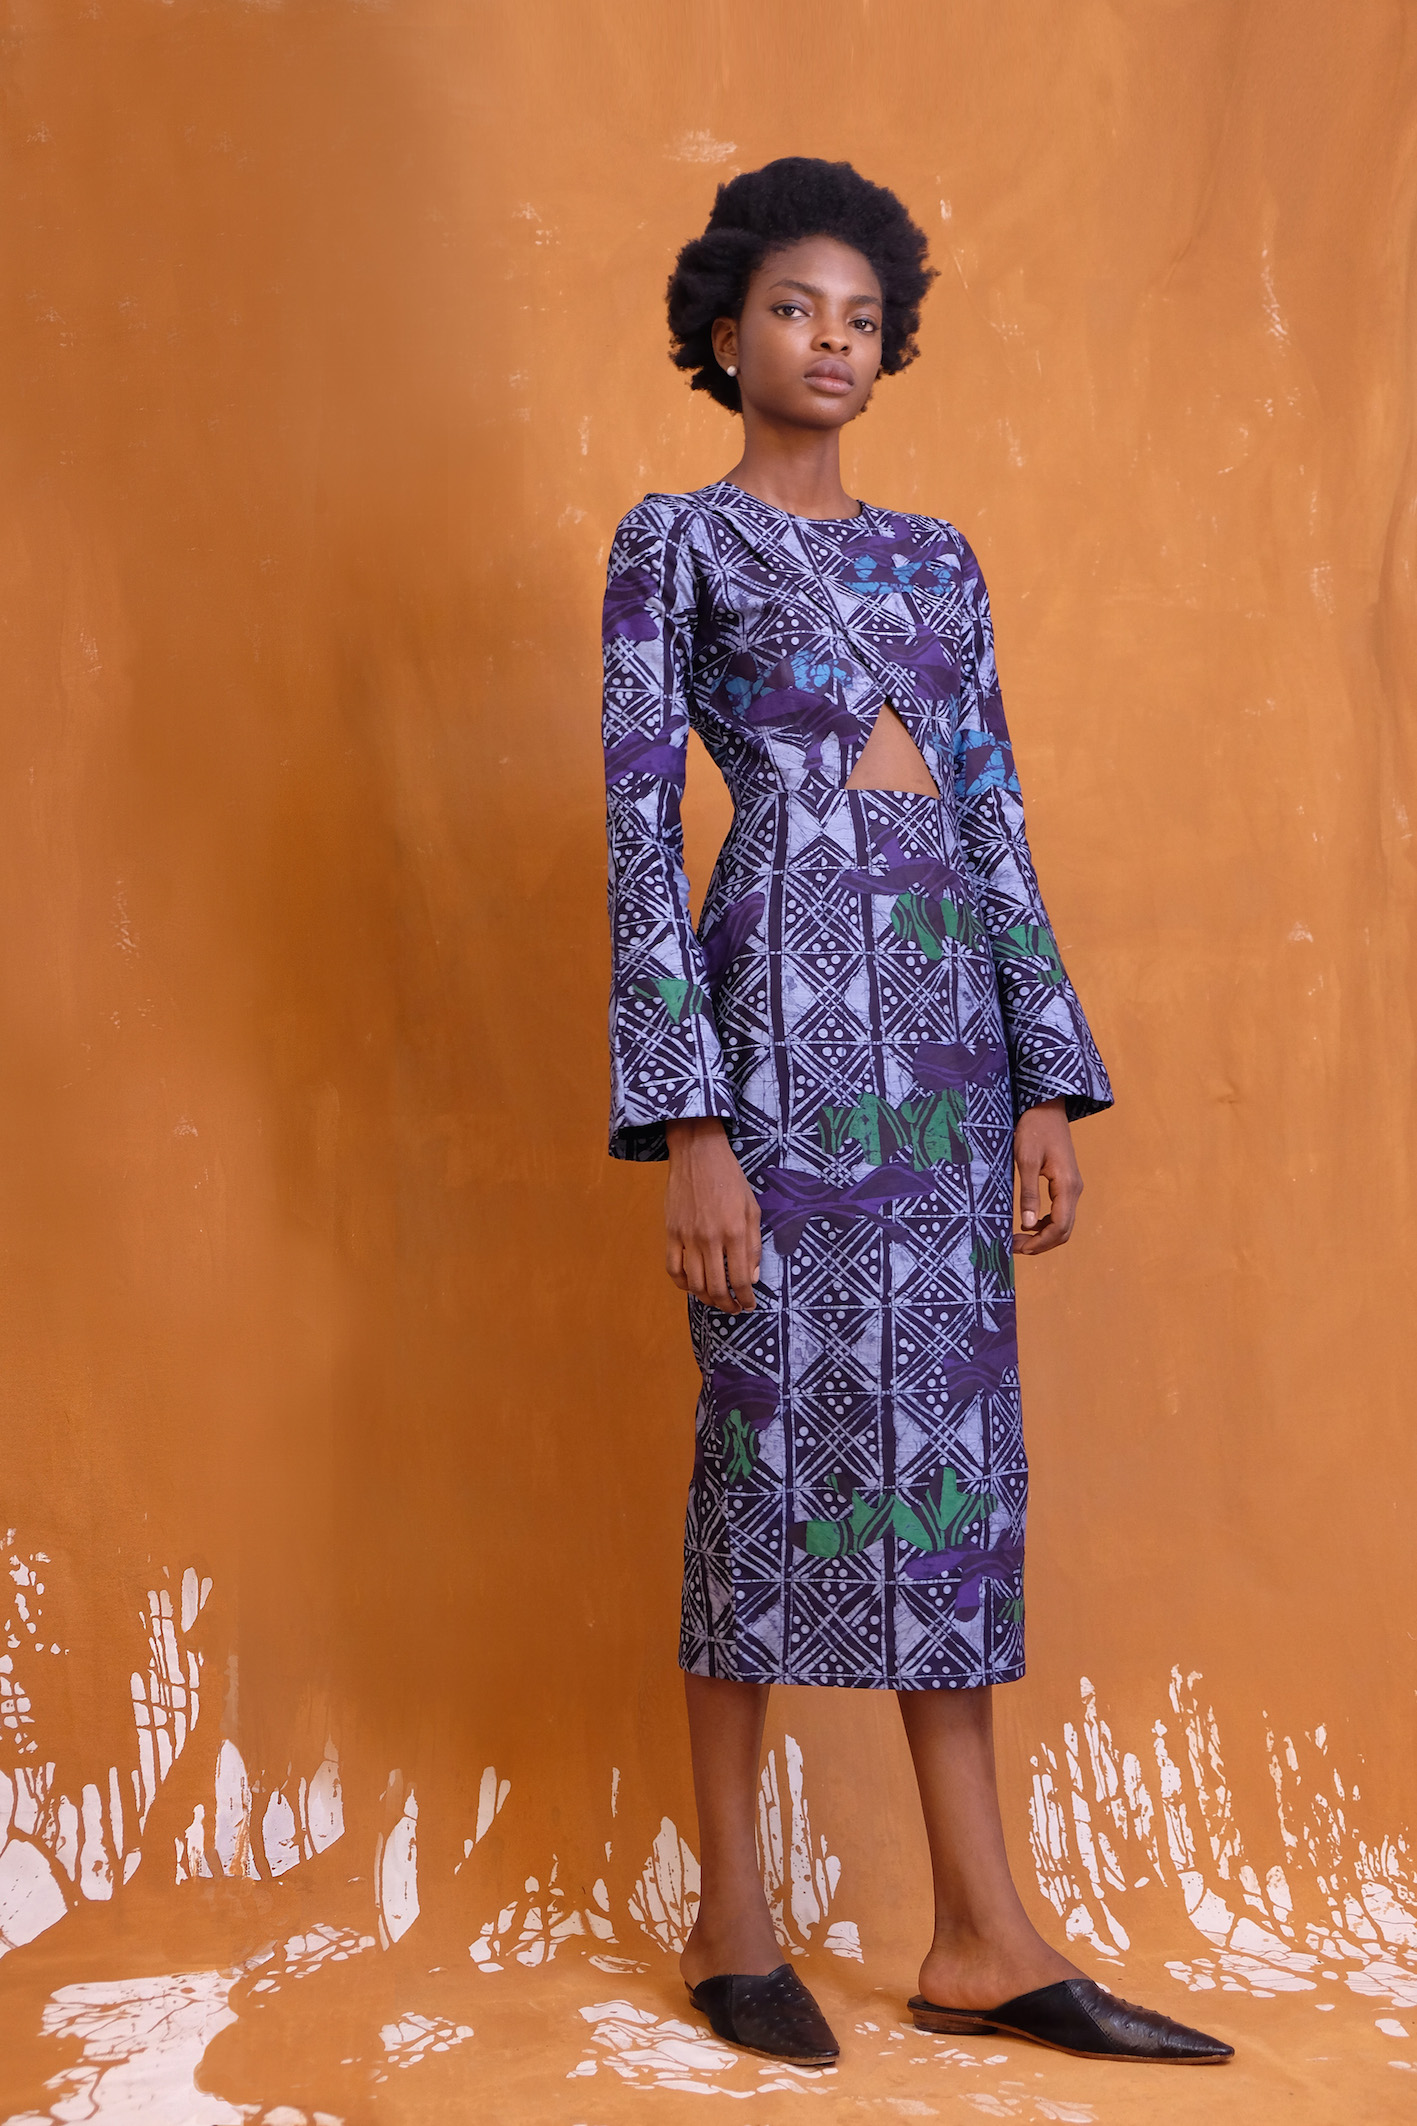 dedication-ceremony-lupita-nyongos-smithsonian-national-museum-of-african-american-history-and-culture-dedication-ceremony-maki-oh-fall-2017-adire-camouflage-dress-3